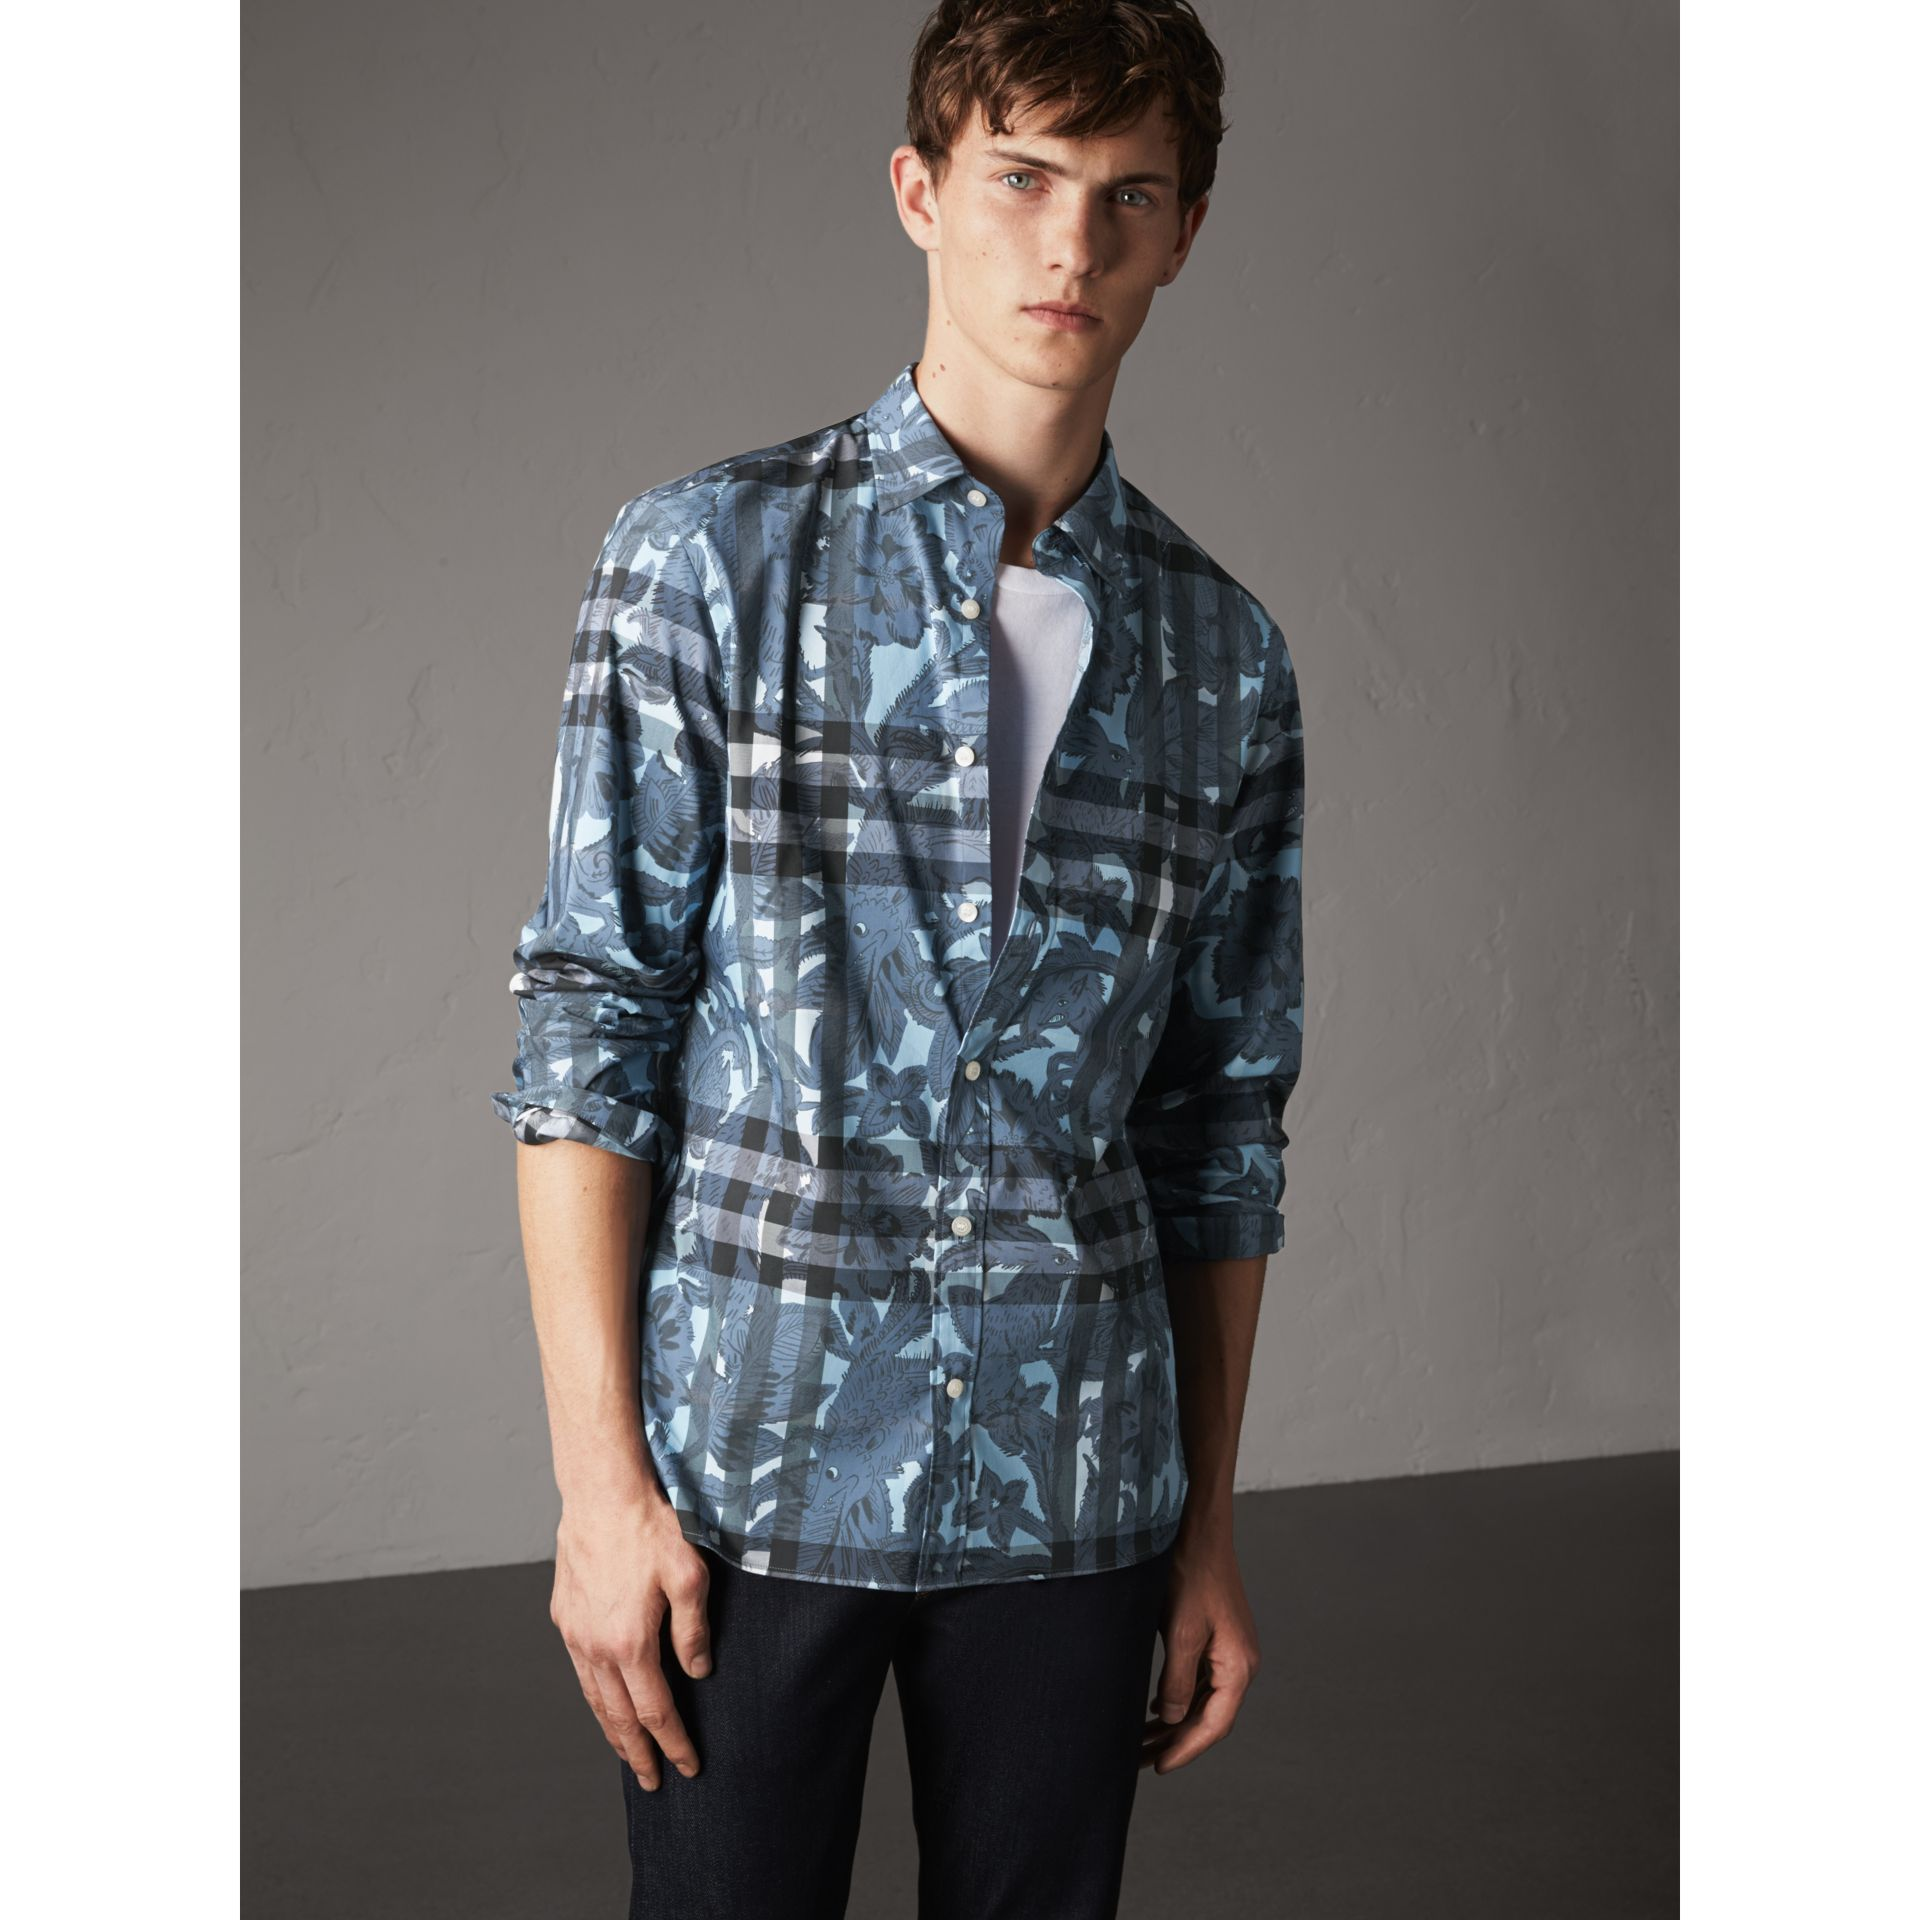 Beasts Print and Check Stretch Cotton Blend Shirt in Stone Blue - Men | Burberry - gallery image 1